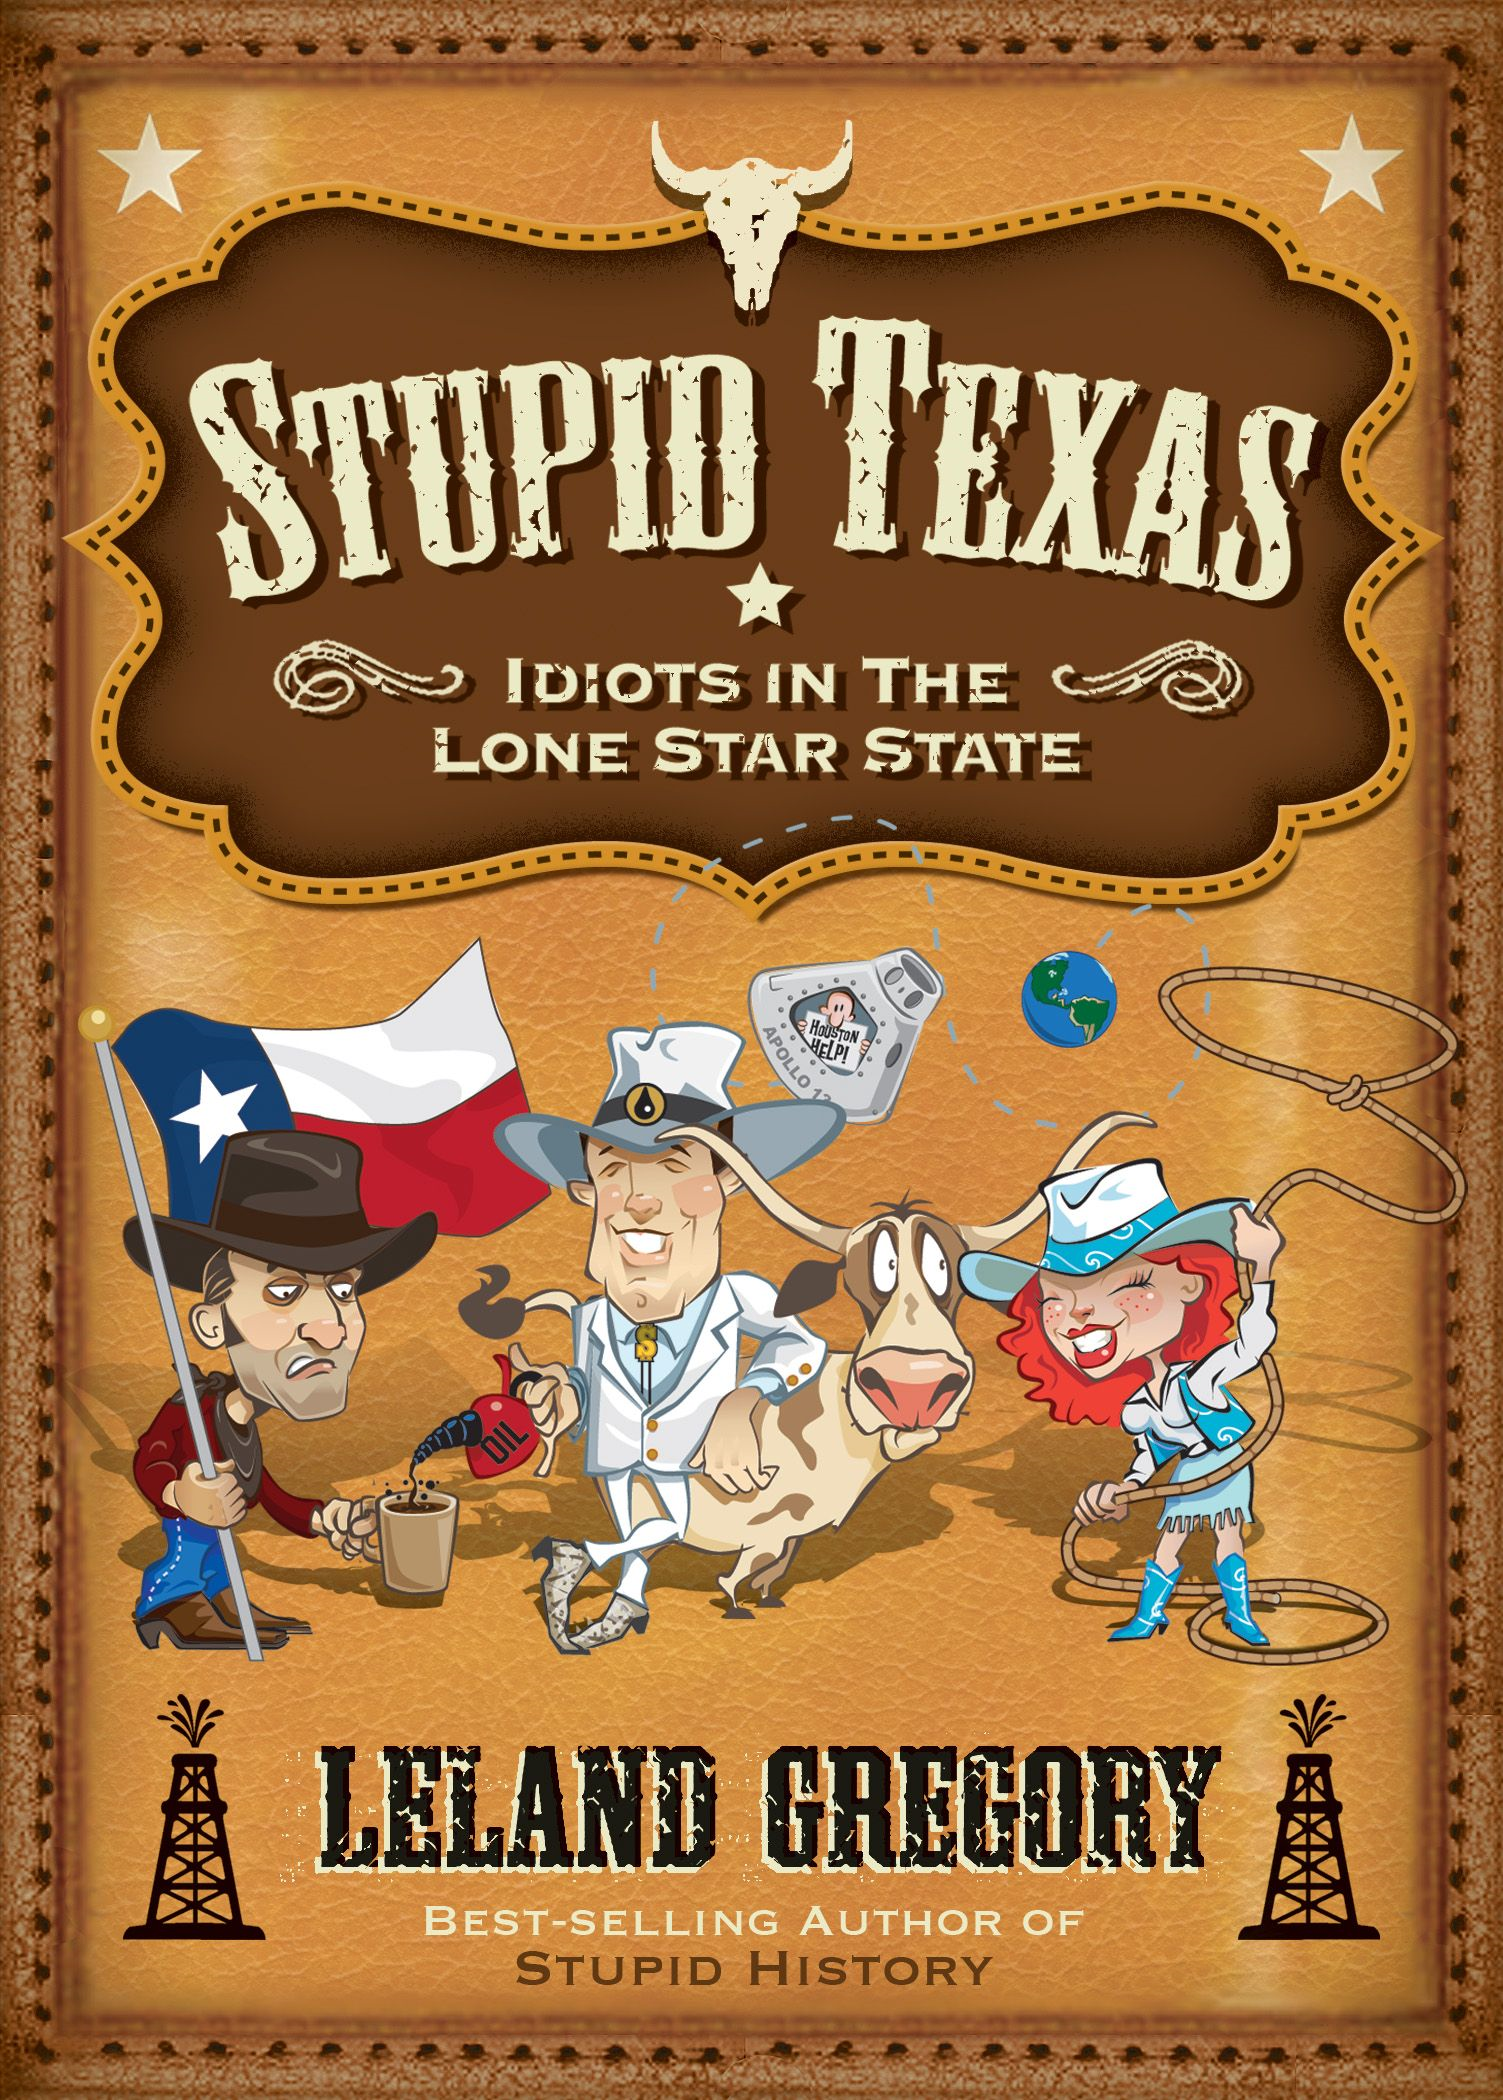 Stupid Texas: Idiots in the Lone Star State